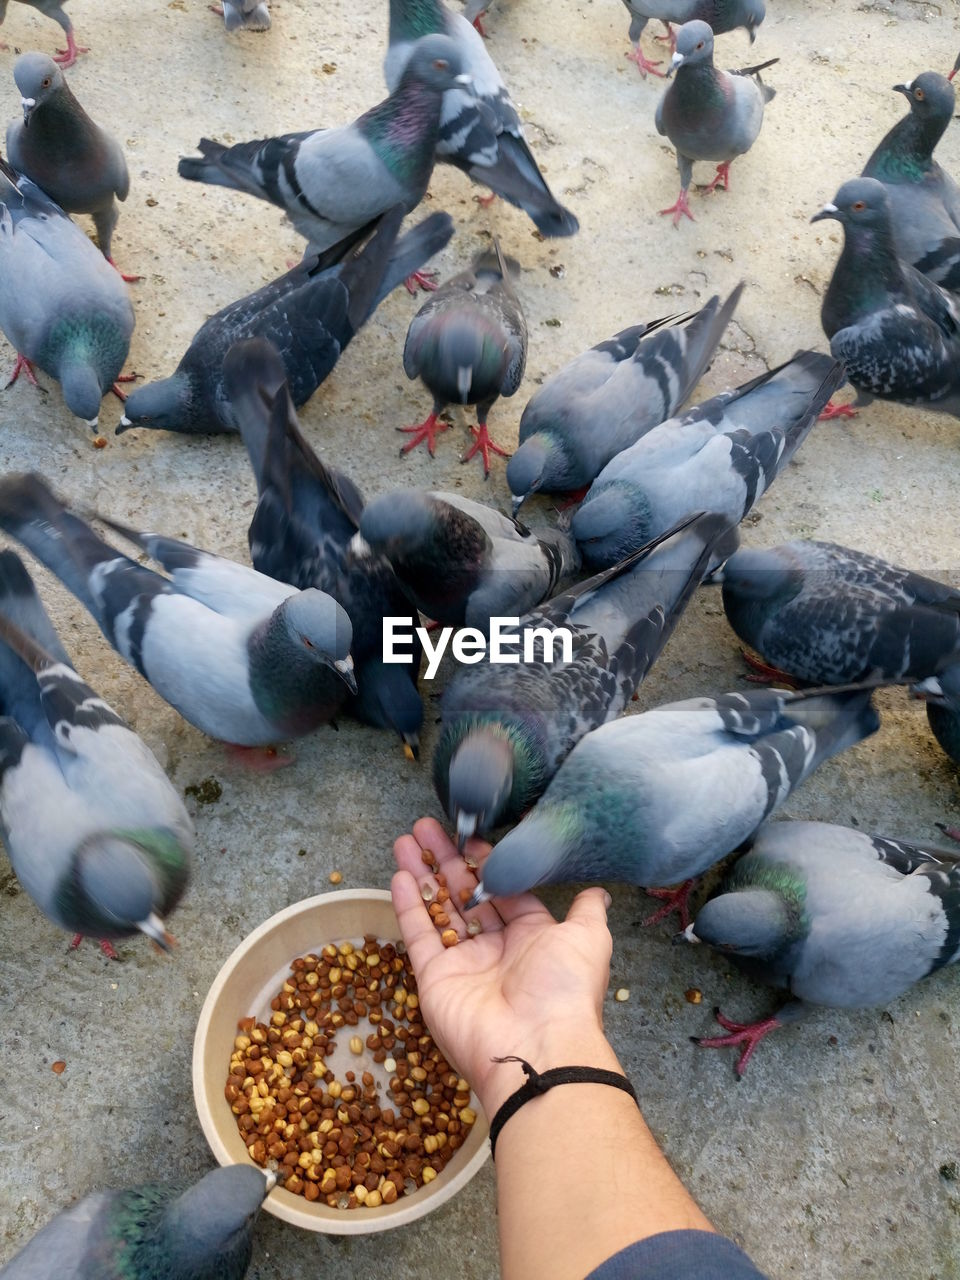 Cropped Image Of Man Feeding Roasted Chick-Peas To Pigeons At Street